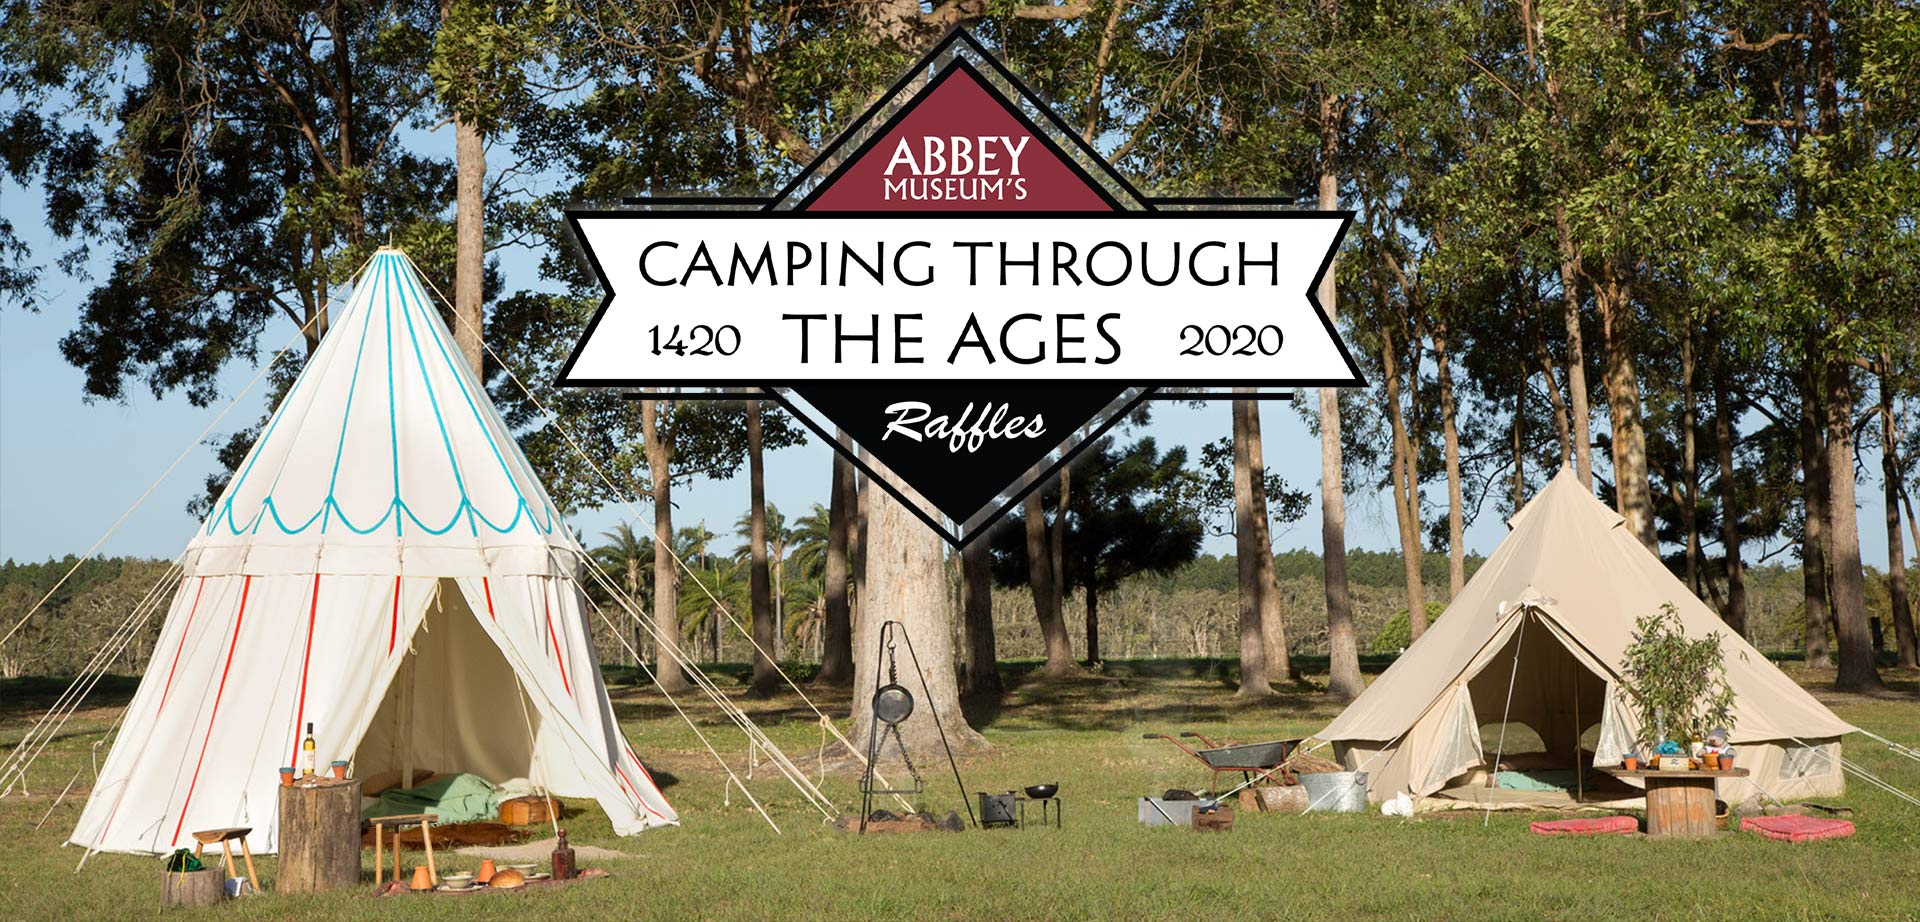 CampingThroughTheAges_website